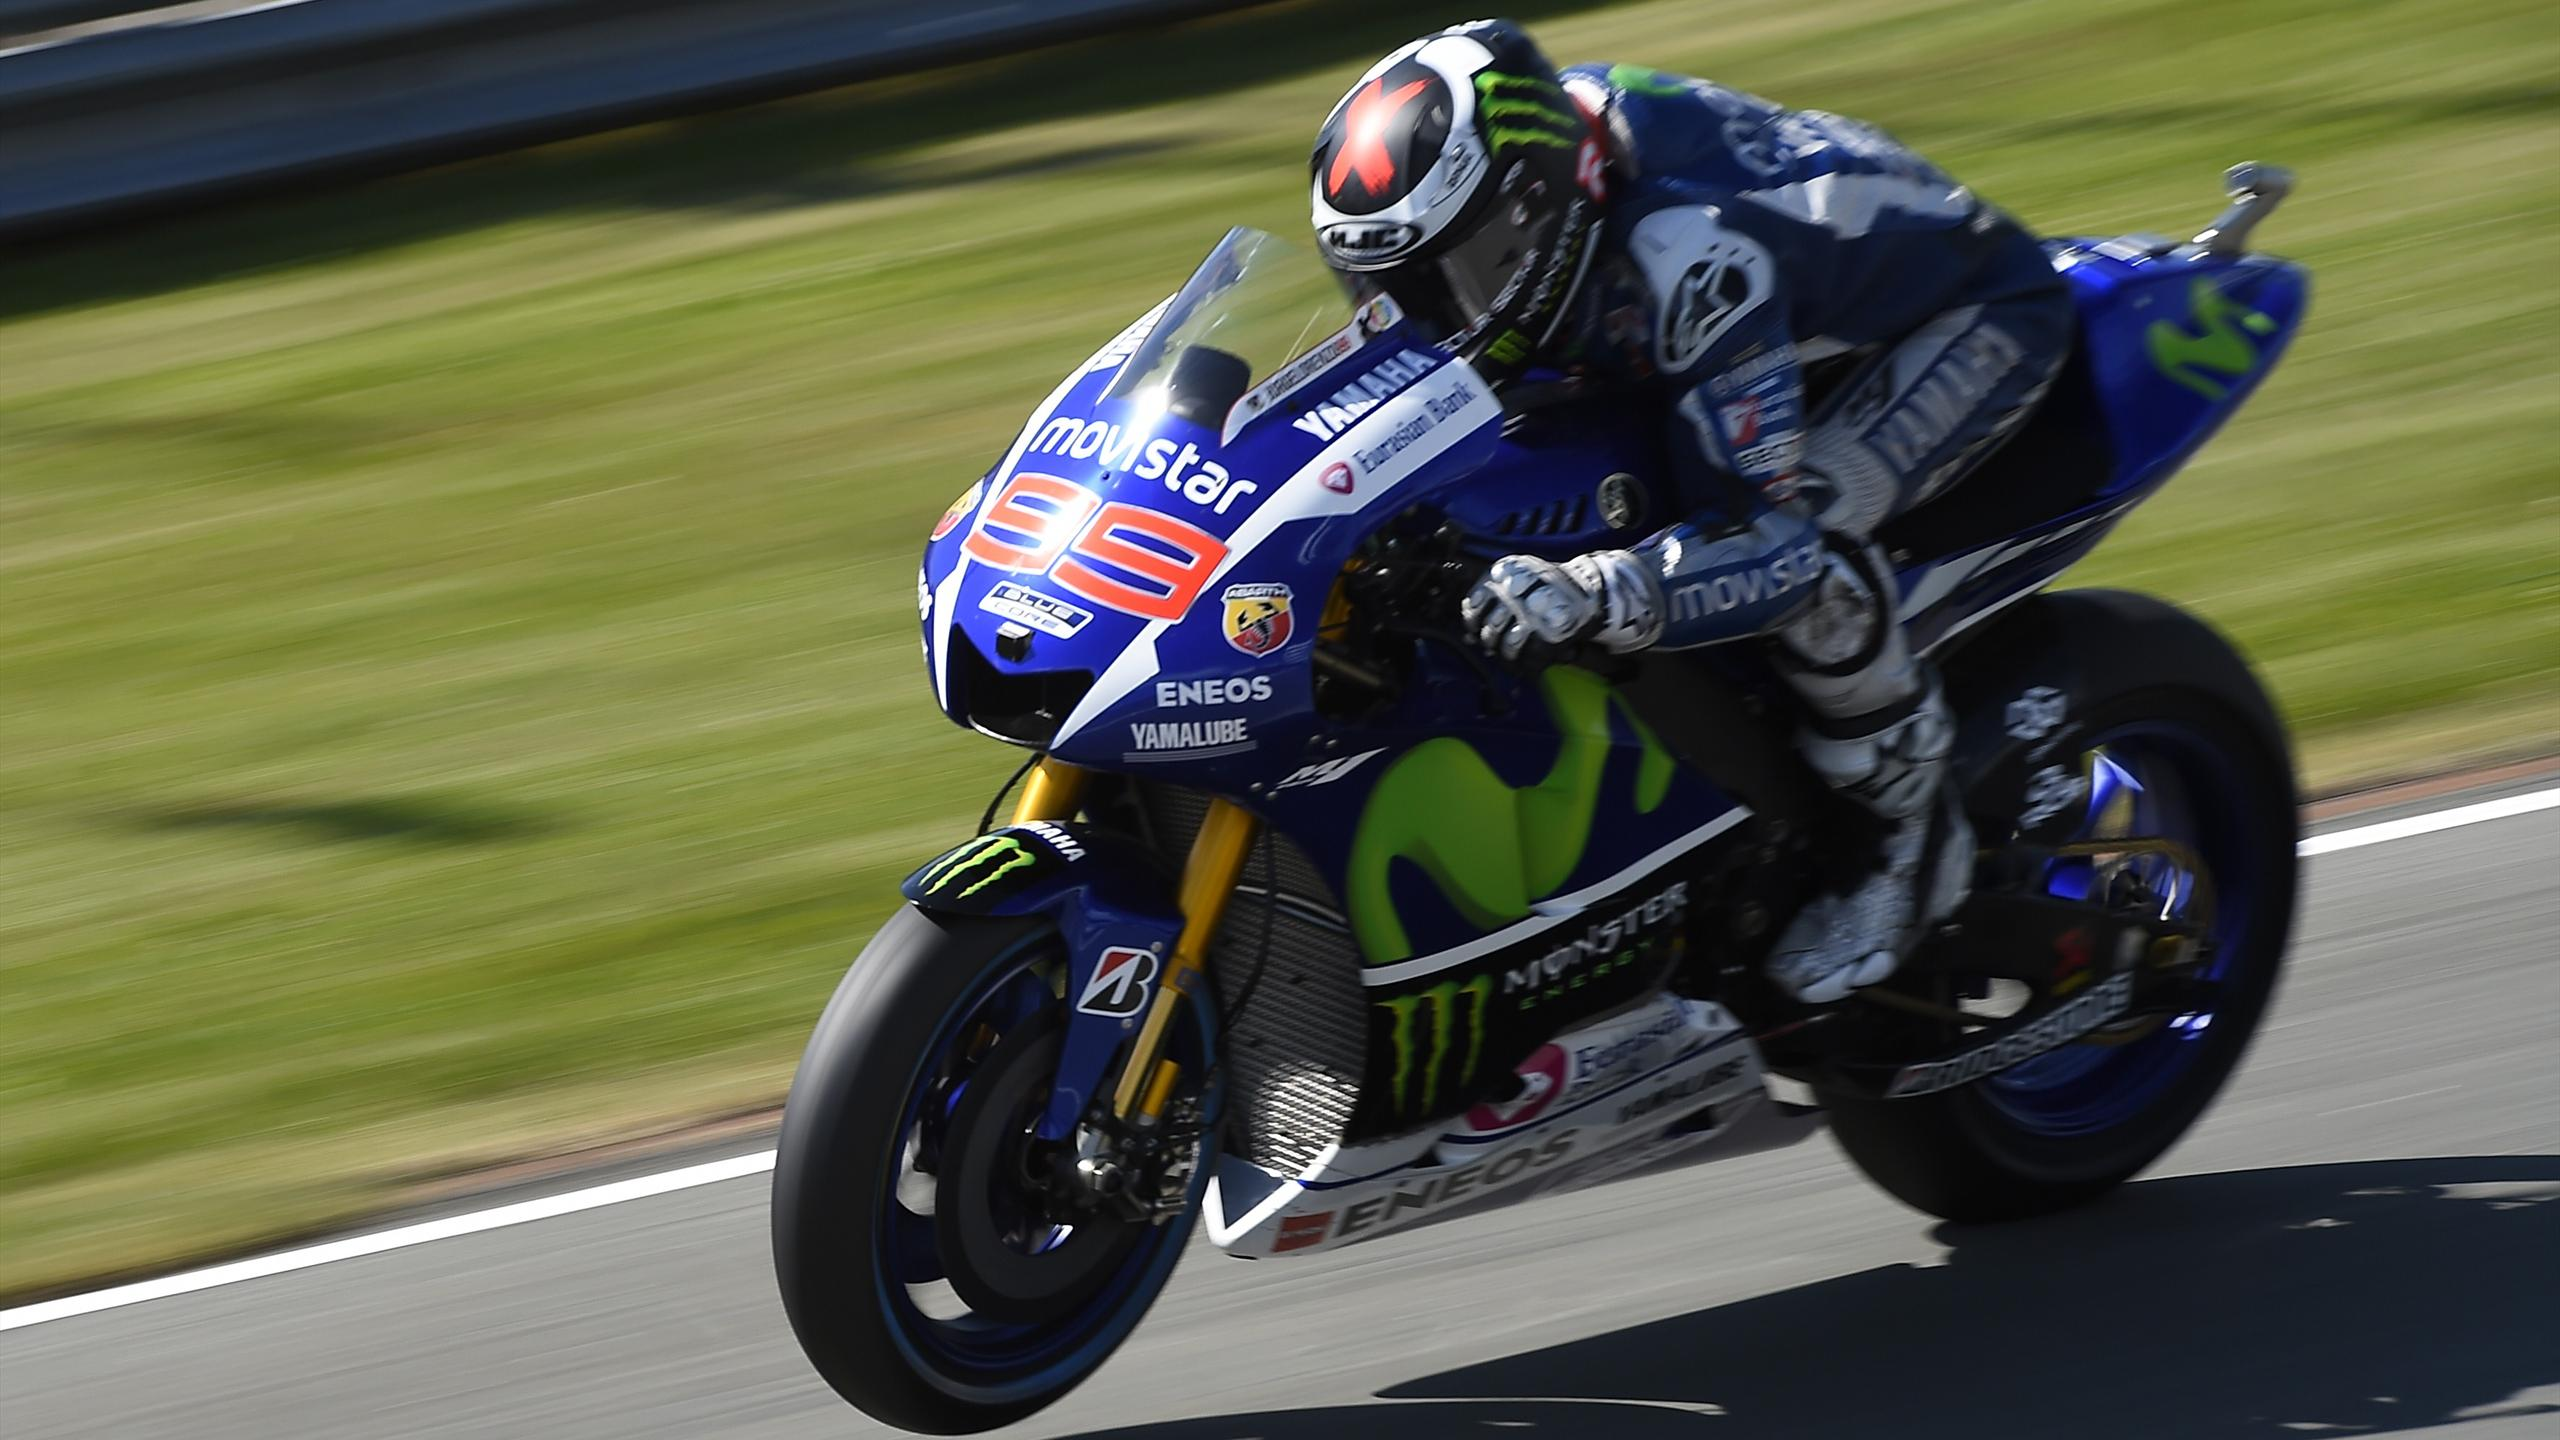 Jorge Lorenzo (Yamaha Factory) - GP of Germany 2015